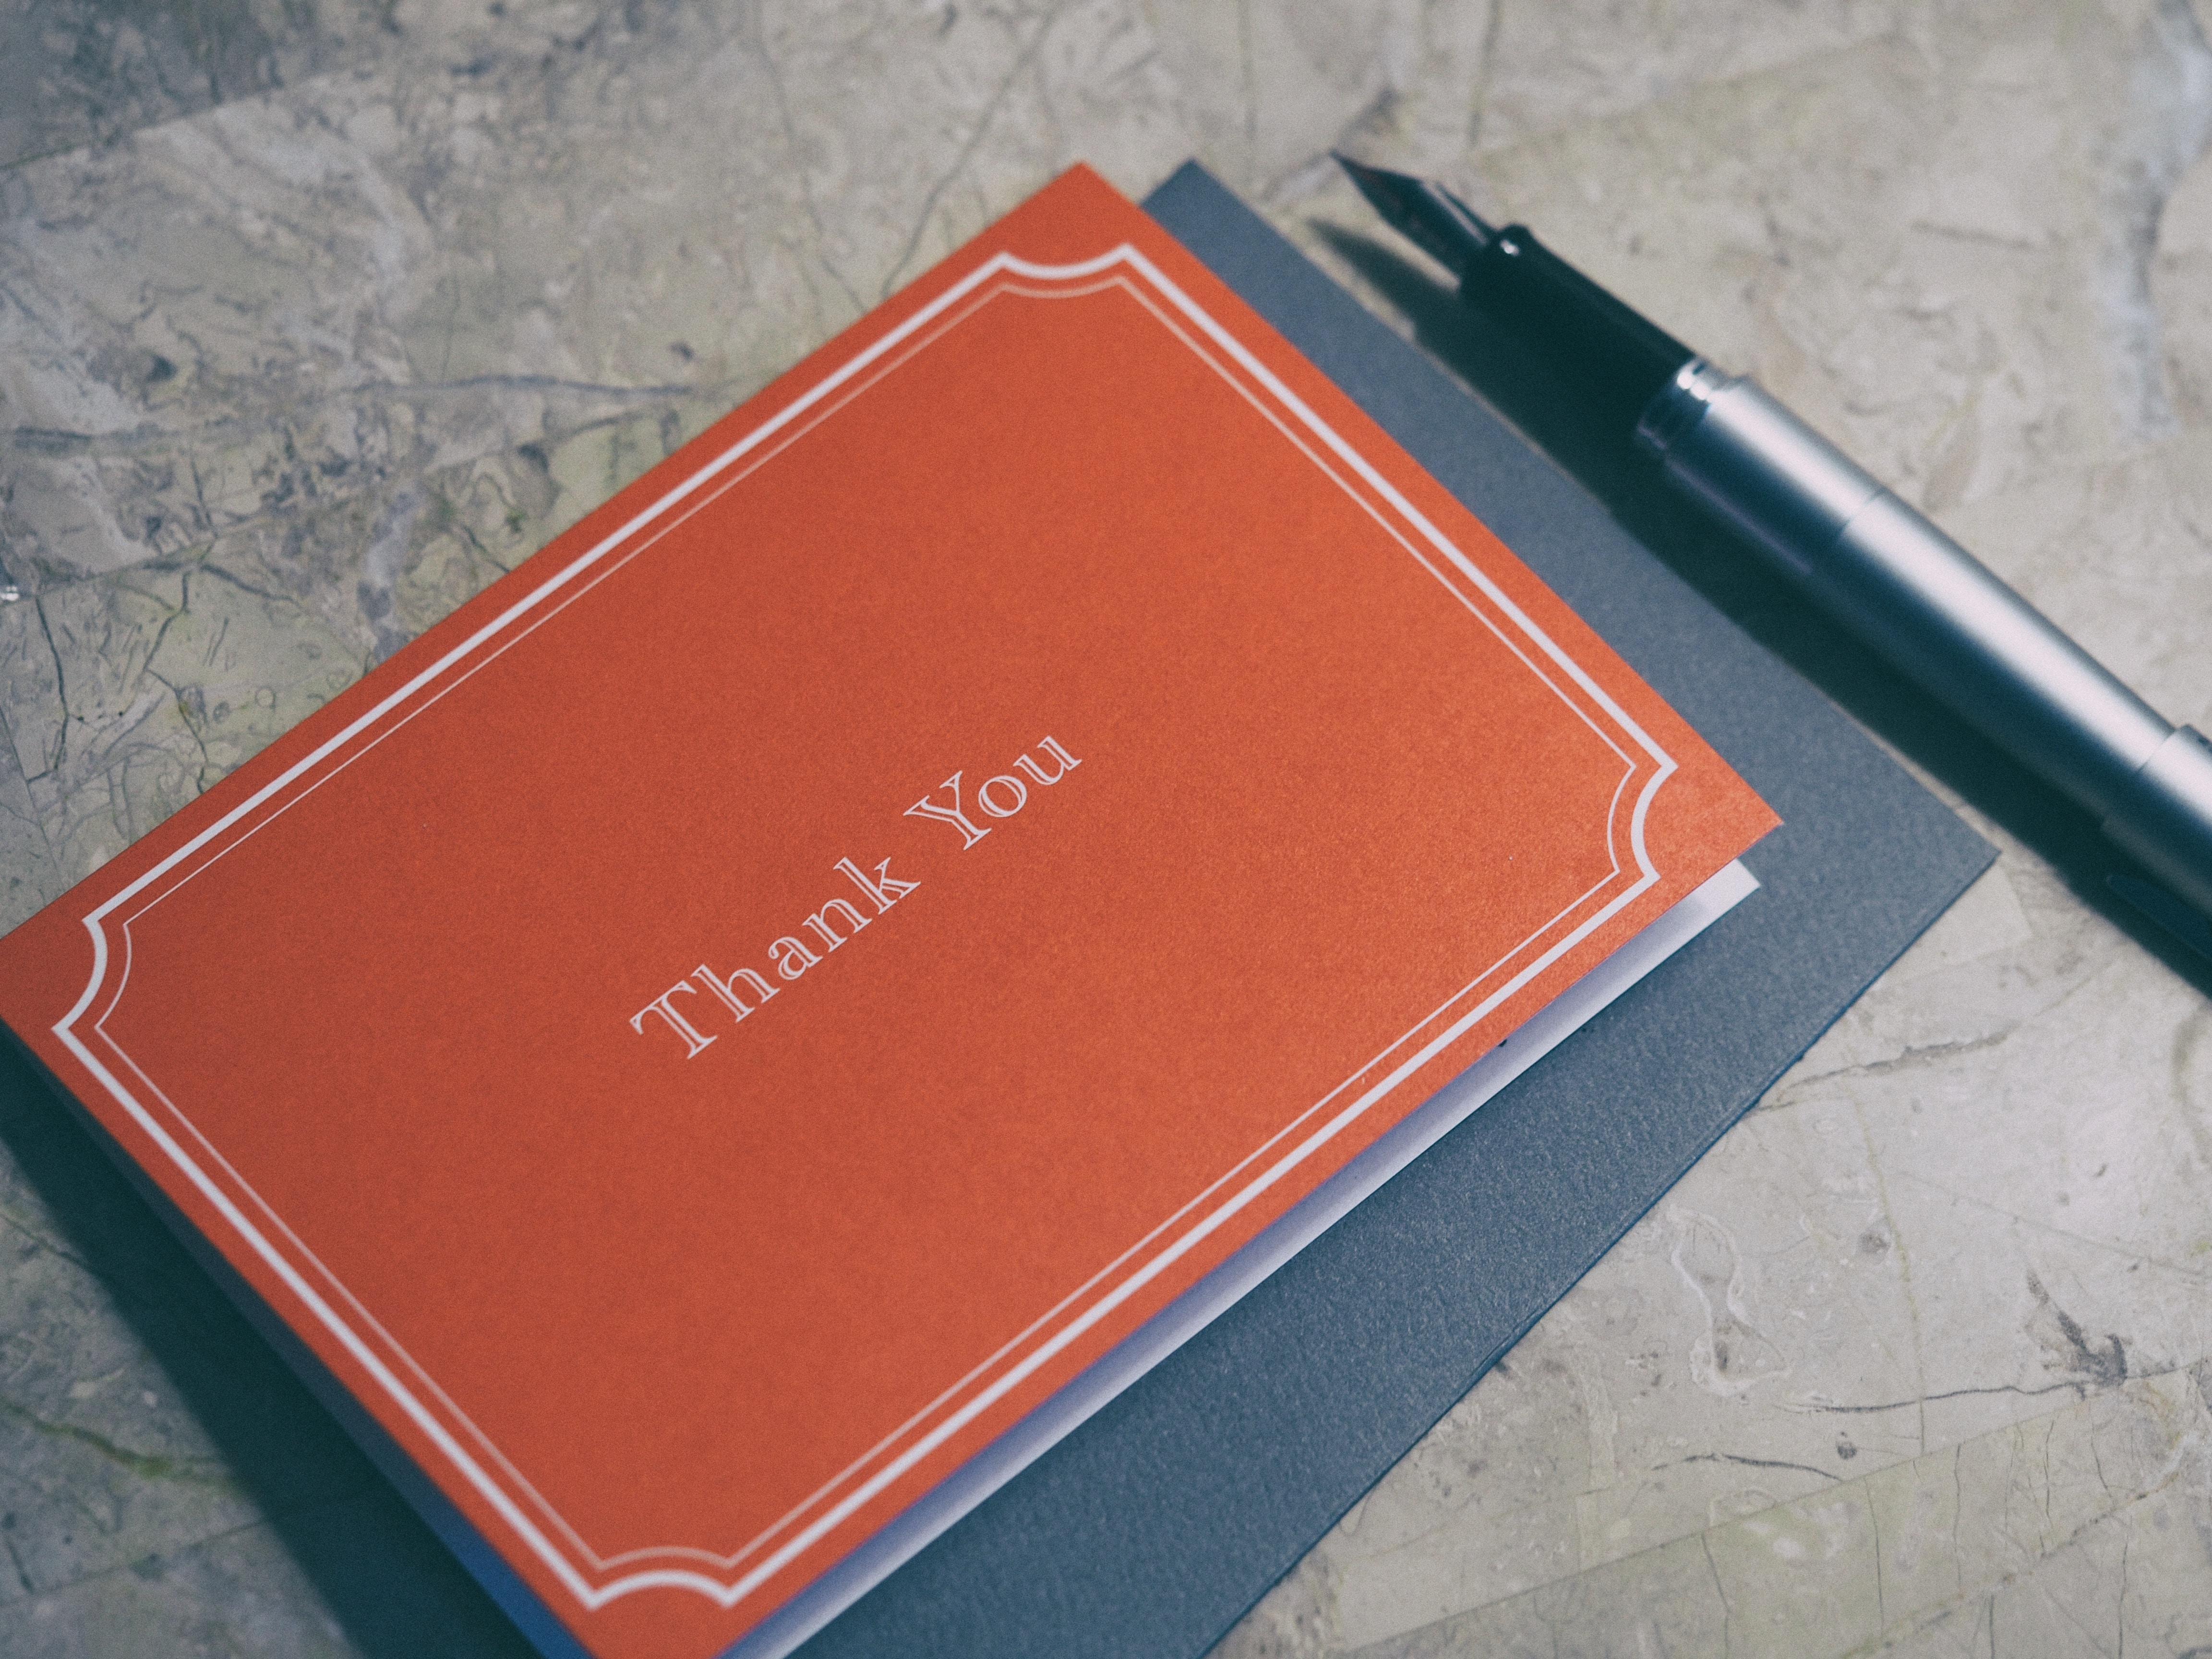 Picture of a thank you card and pen